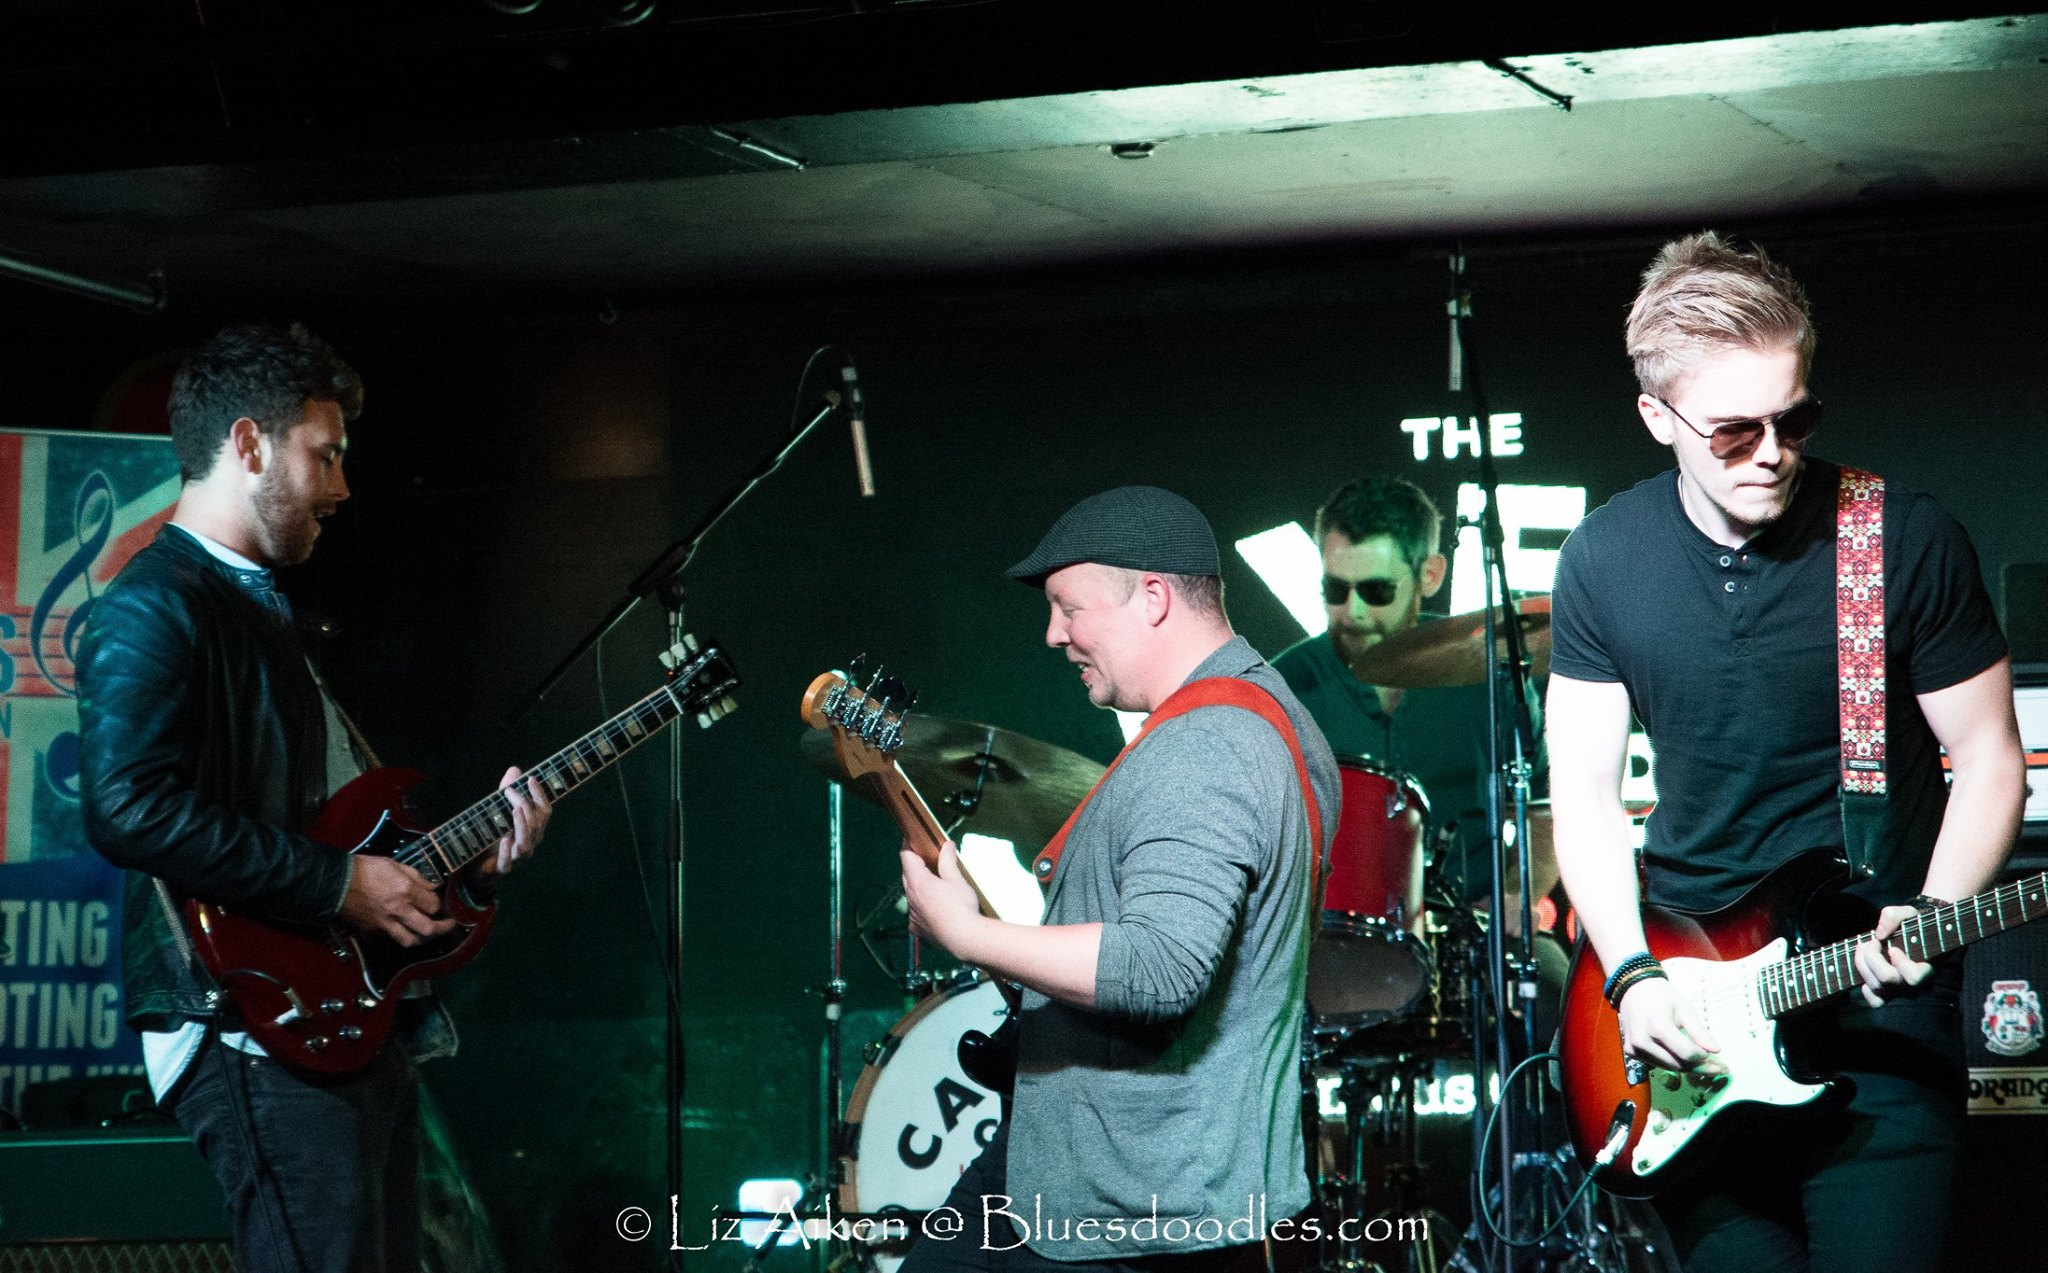 photo by Liz Aitken of Rainbreakers at UK Blues Challenge